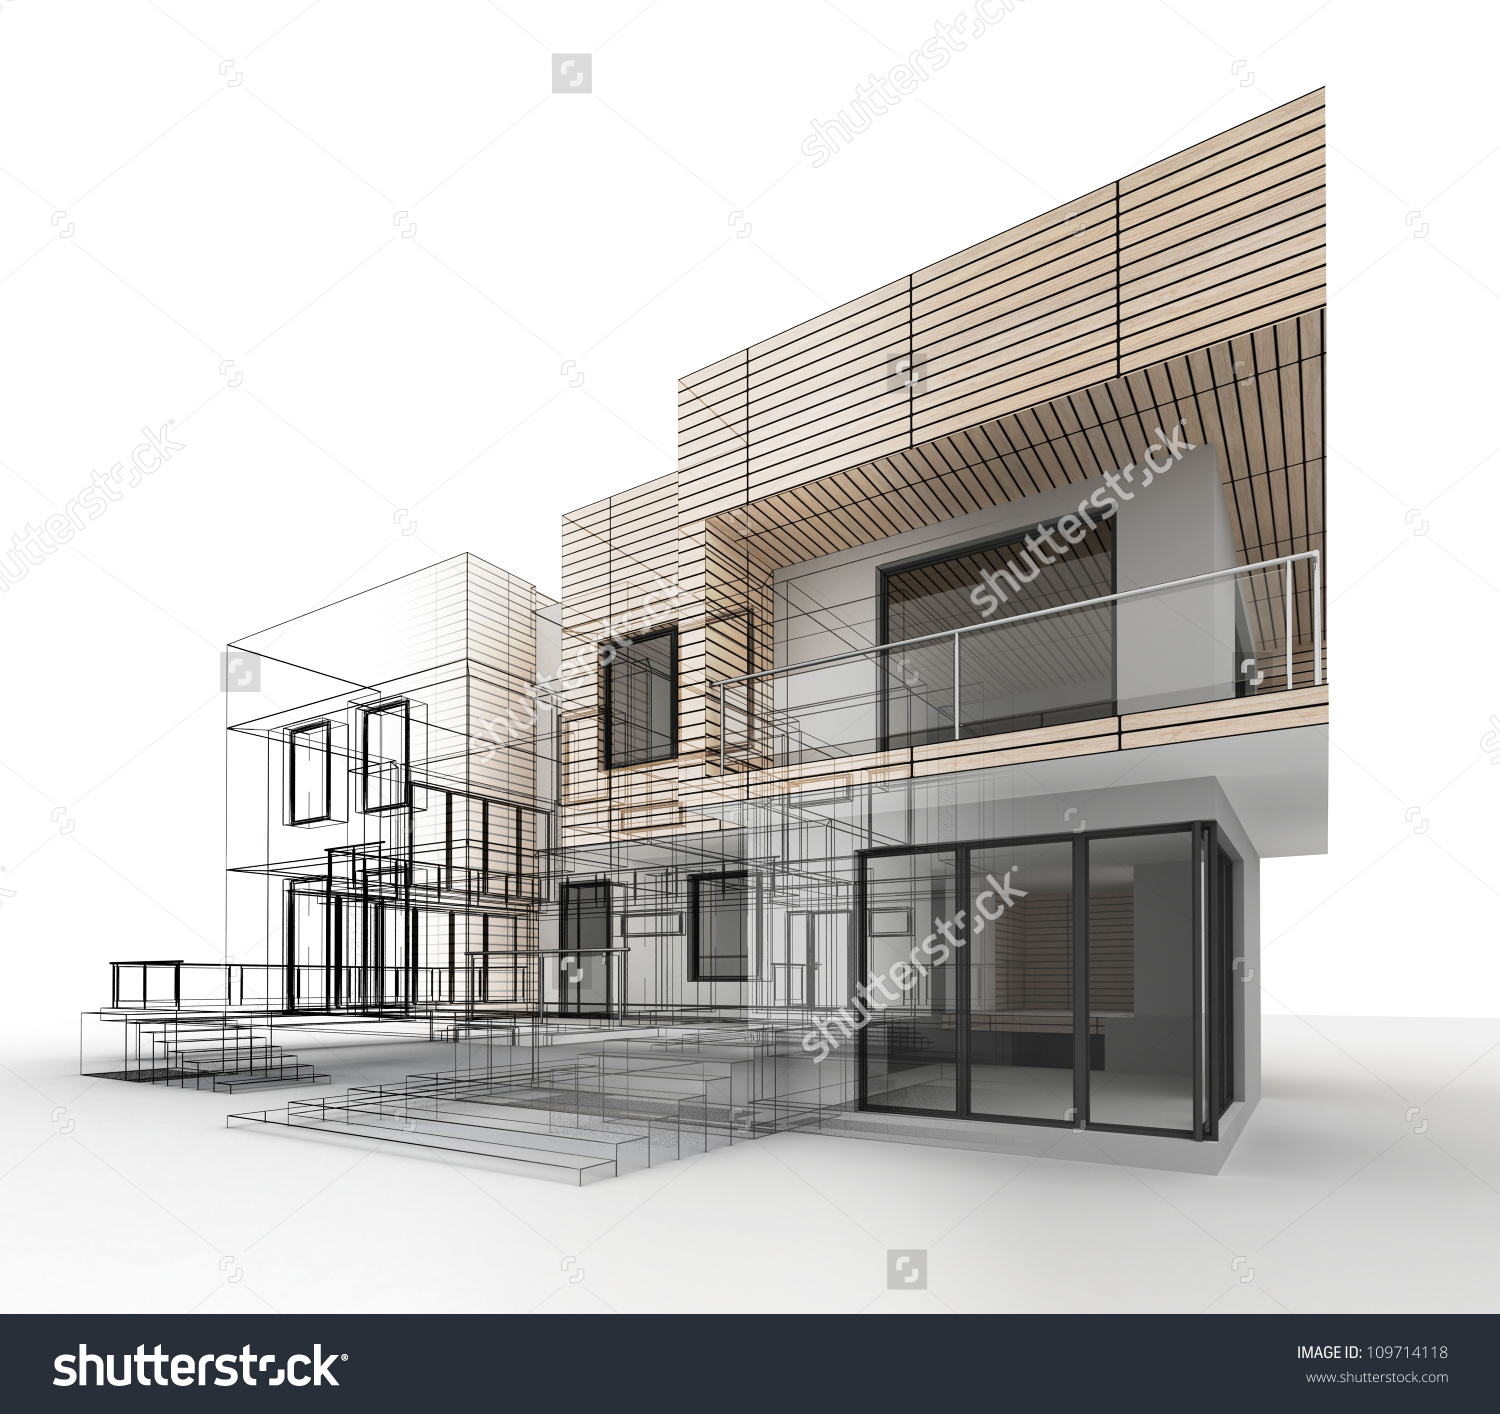 House Interior Drawing at GetDrawings com   Free for personal use     1500x1414 Architecture House Floor Plans Free Ceramic And Wooden Flooring